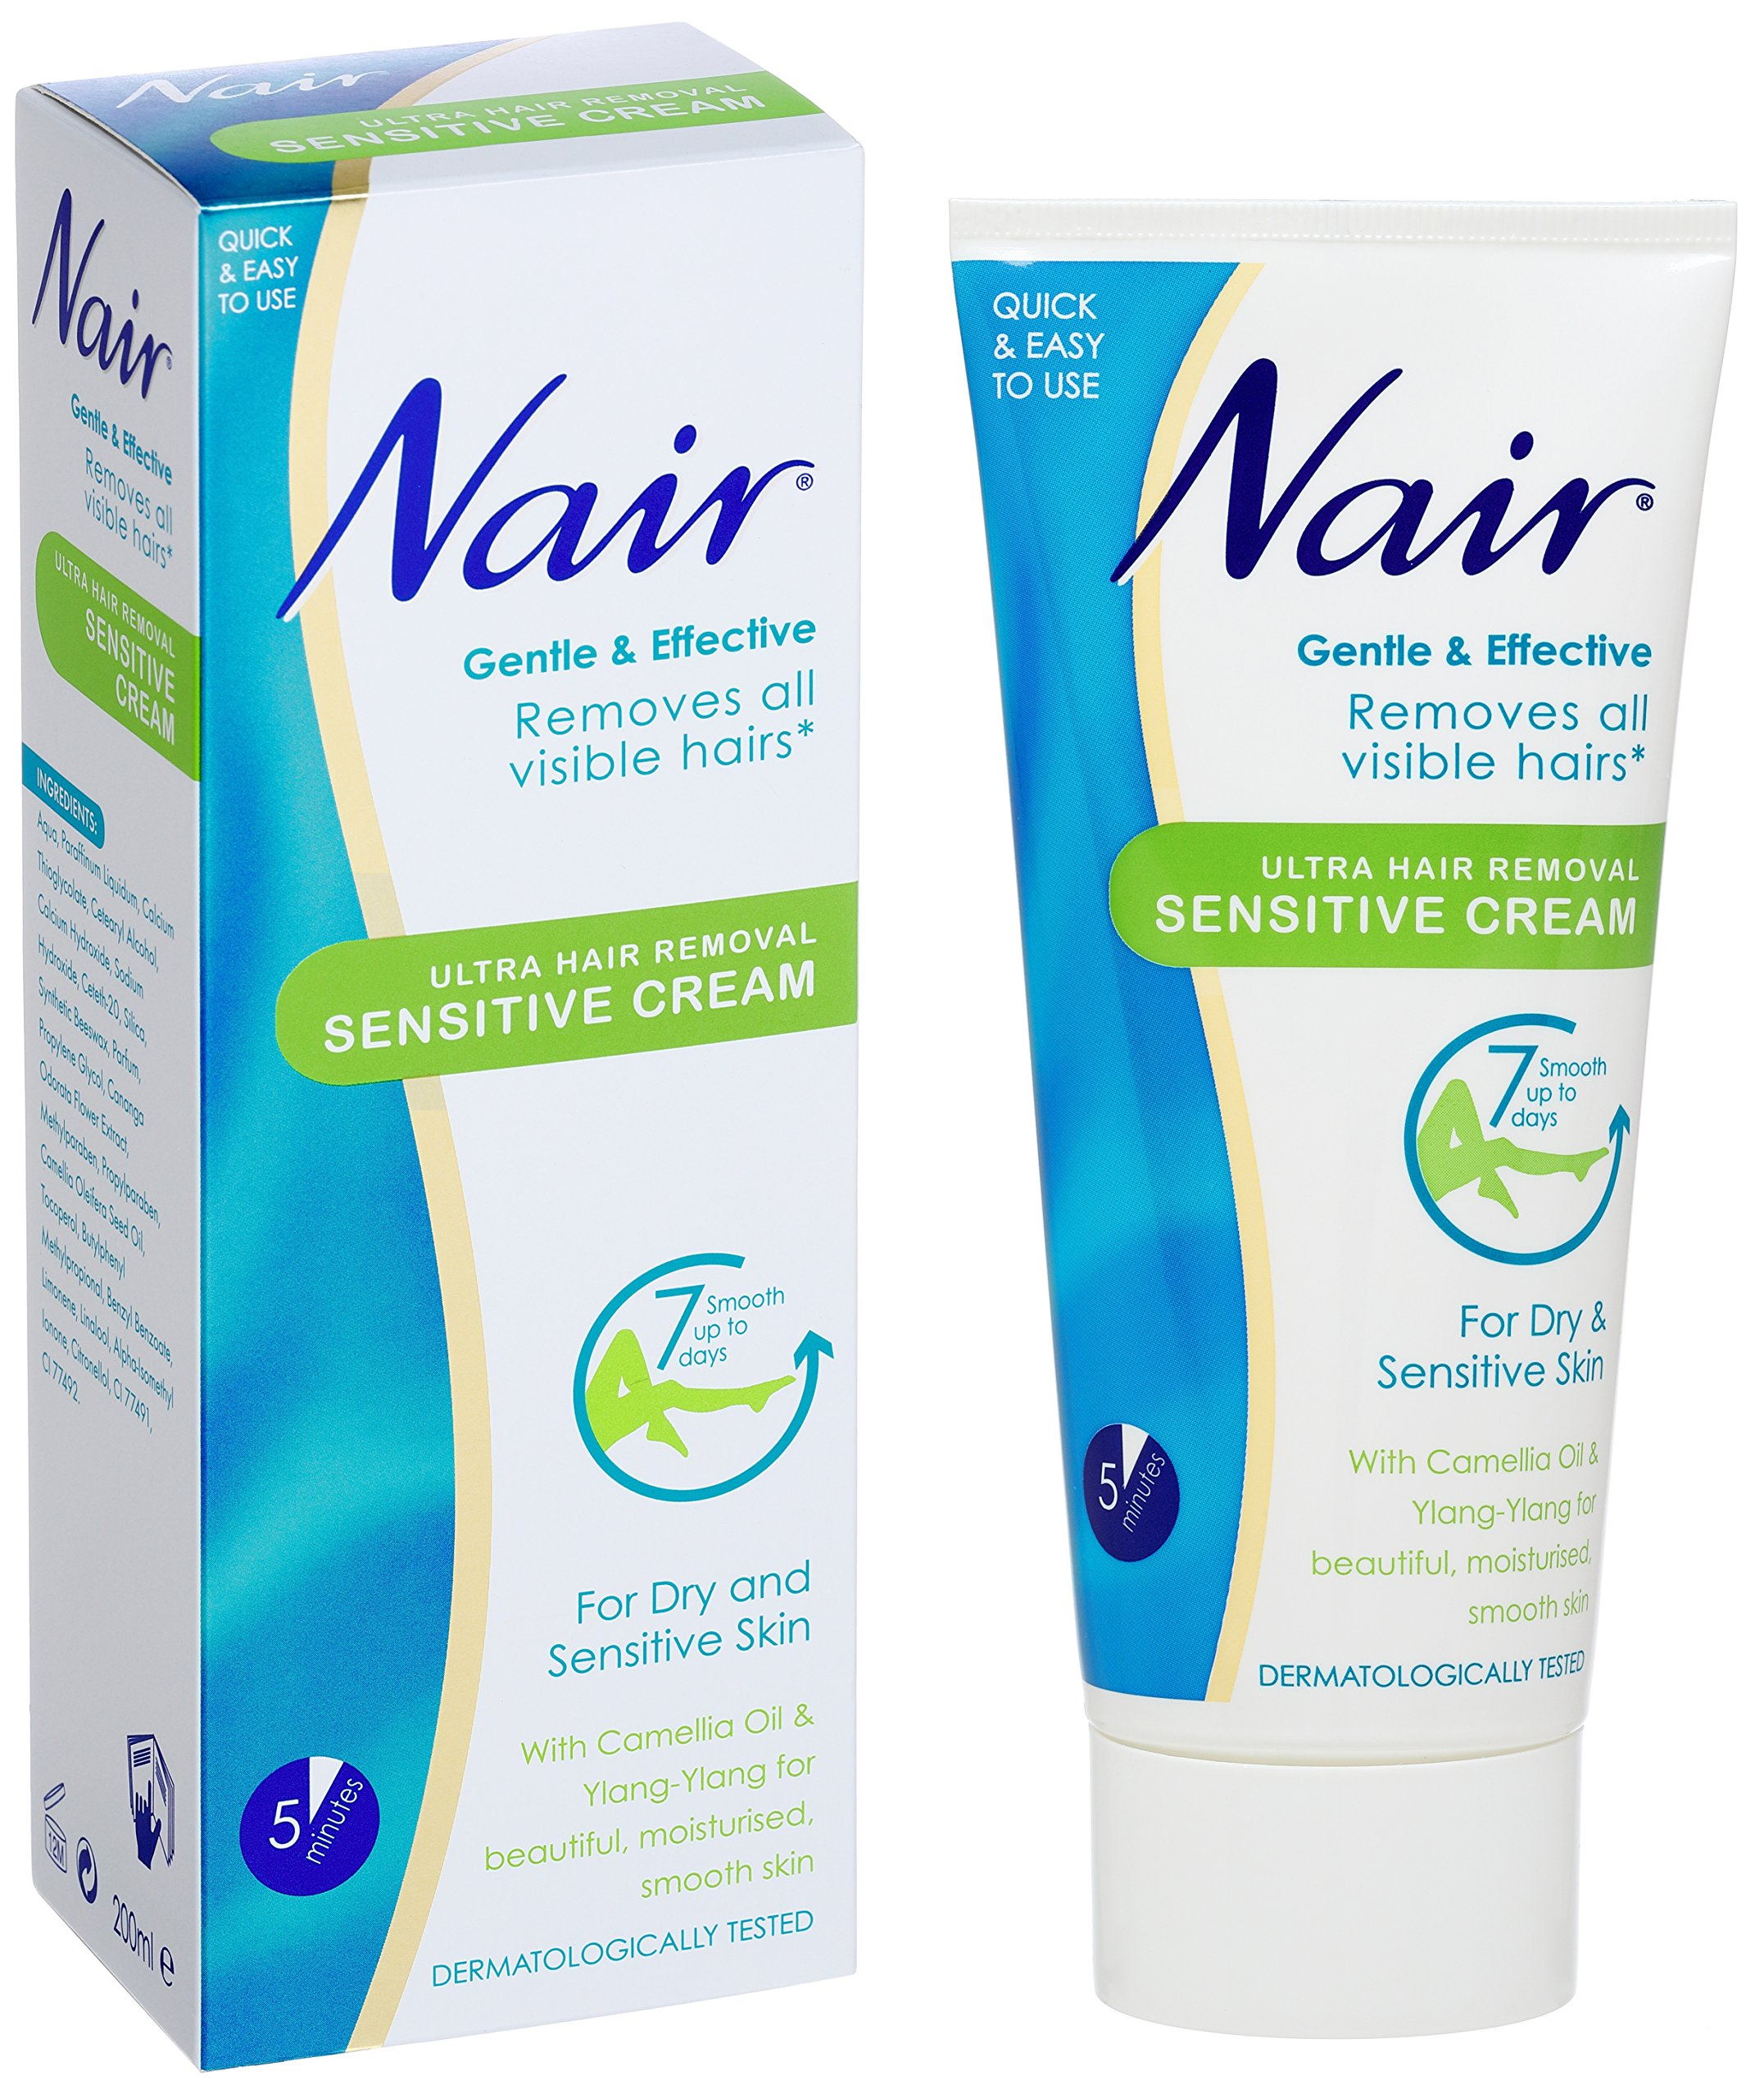 Nair Ultra Hair Removal Sensitive Cream For Dry Sensitive